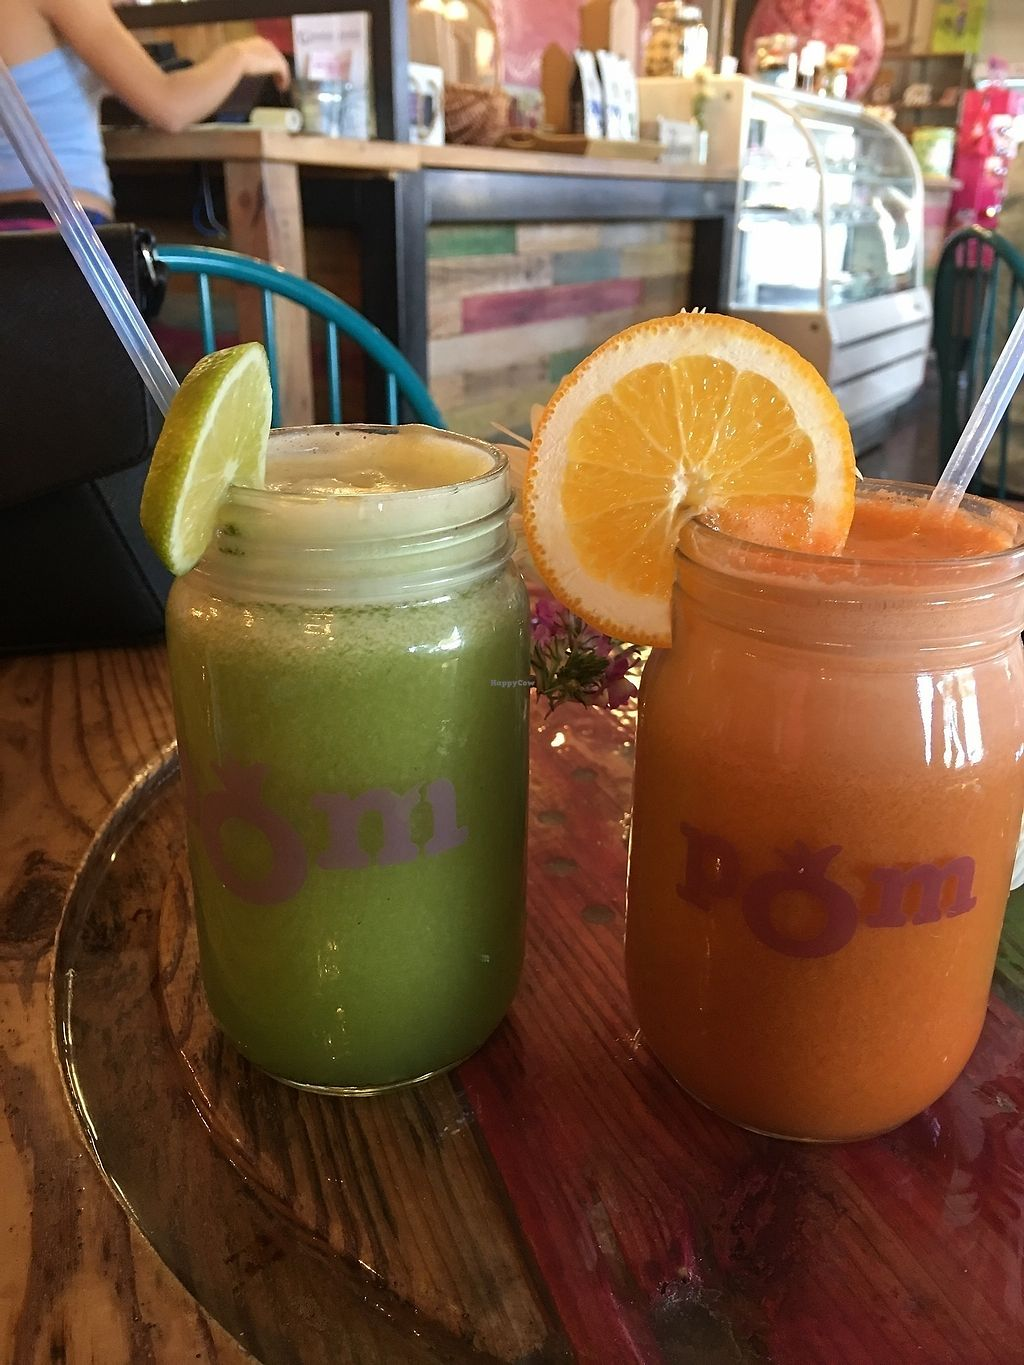 """Photo of Pomegranate Cafe - Chandler Blvd  by <a href=""""/members/profile/Dnymud"""">Dnymud</a> <br/>Healthy juice drinks at Pomegranate Cafe <br/> February 4, 2018  - <a href='/contact/abuse/image/22101/354631'>Report</a>"""